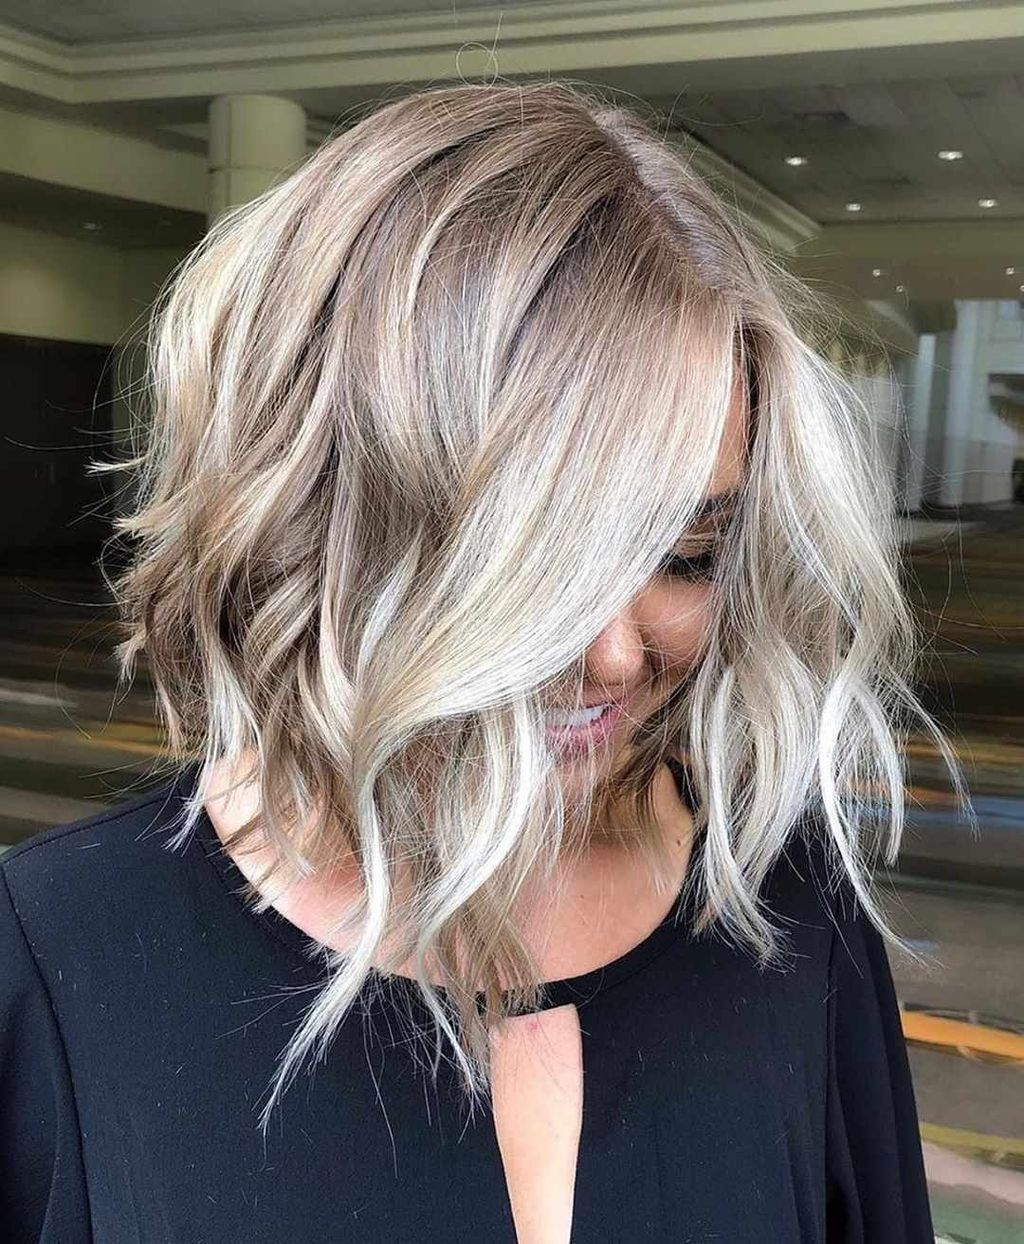 30+ Beautiful Short Hairstyles Summer Trends Ideas For 2019